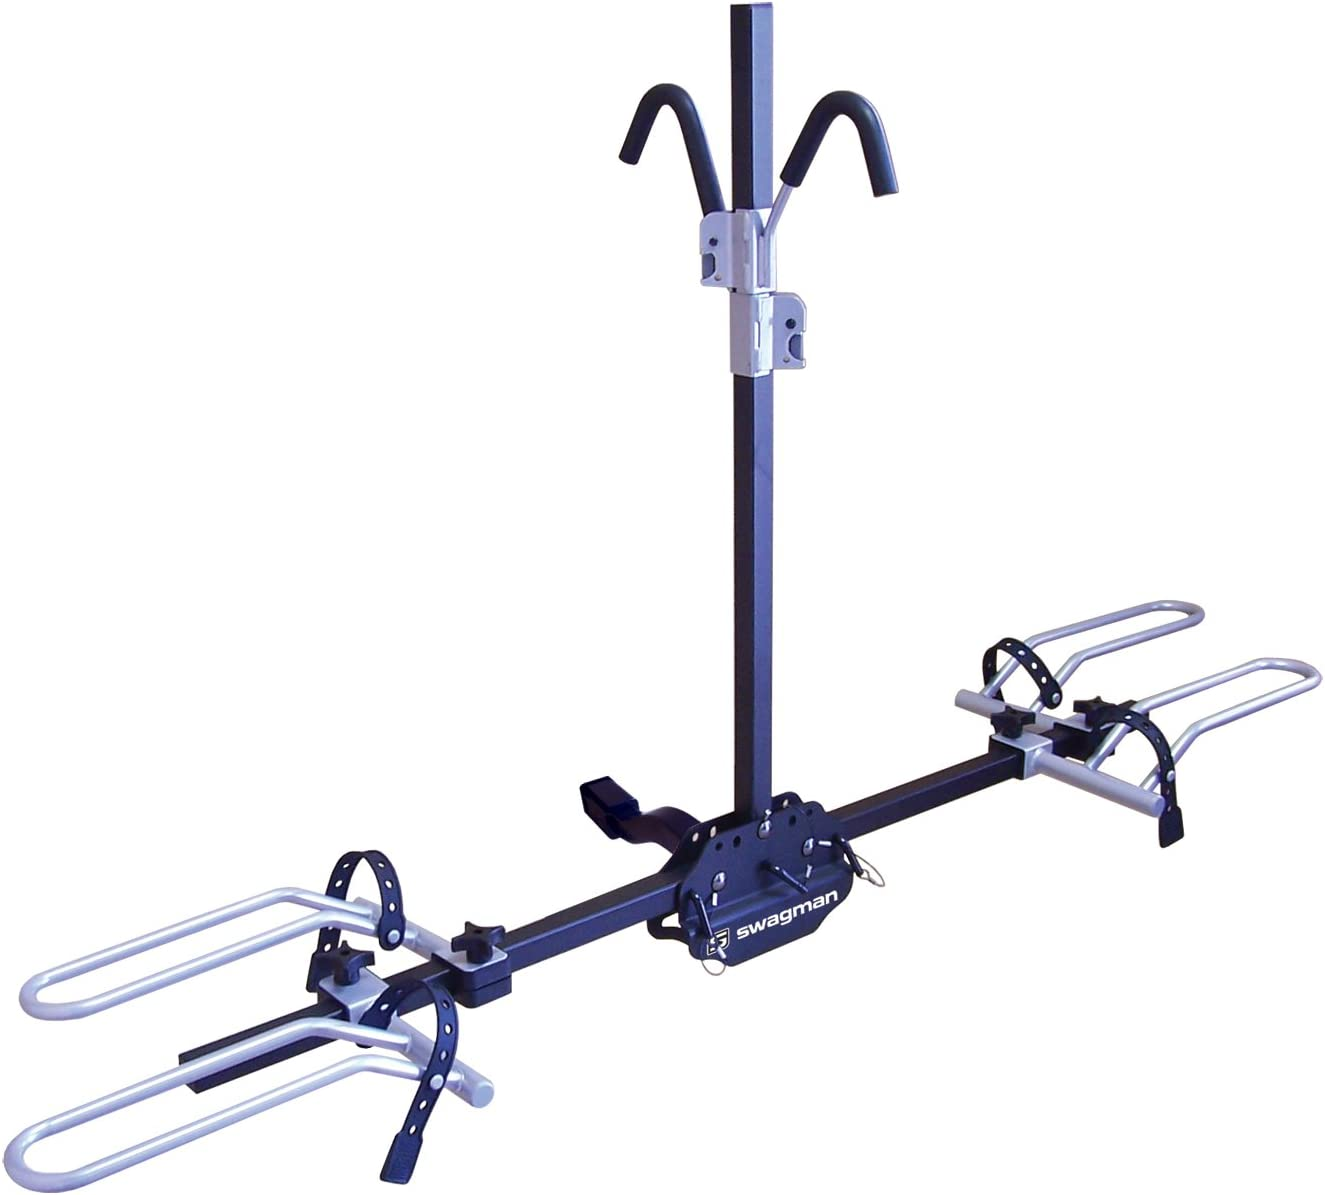 Swagman XTC2 Hitch Mount Bike Rack